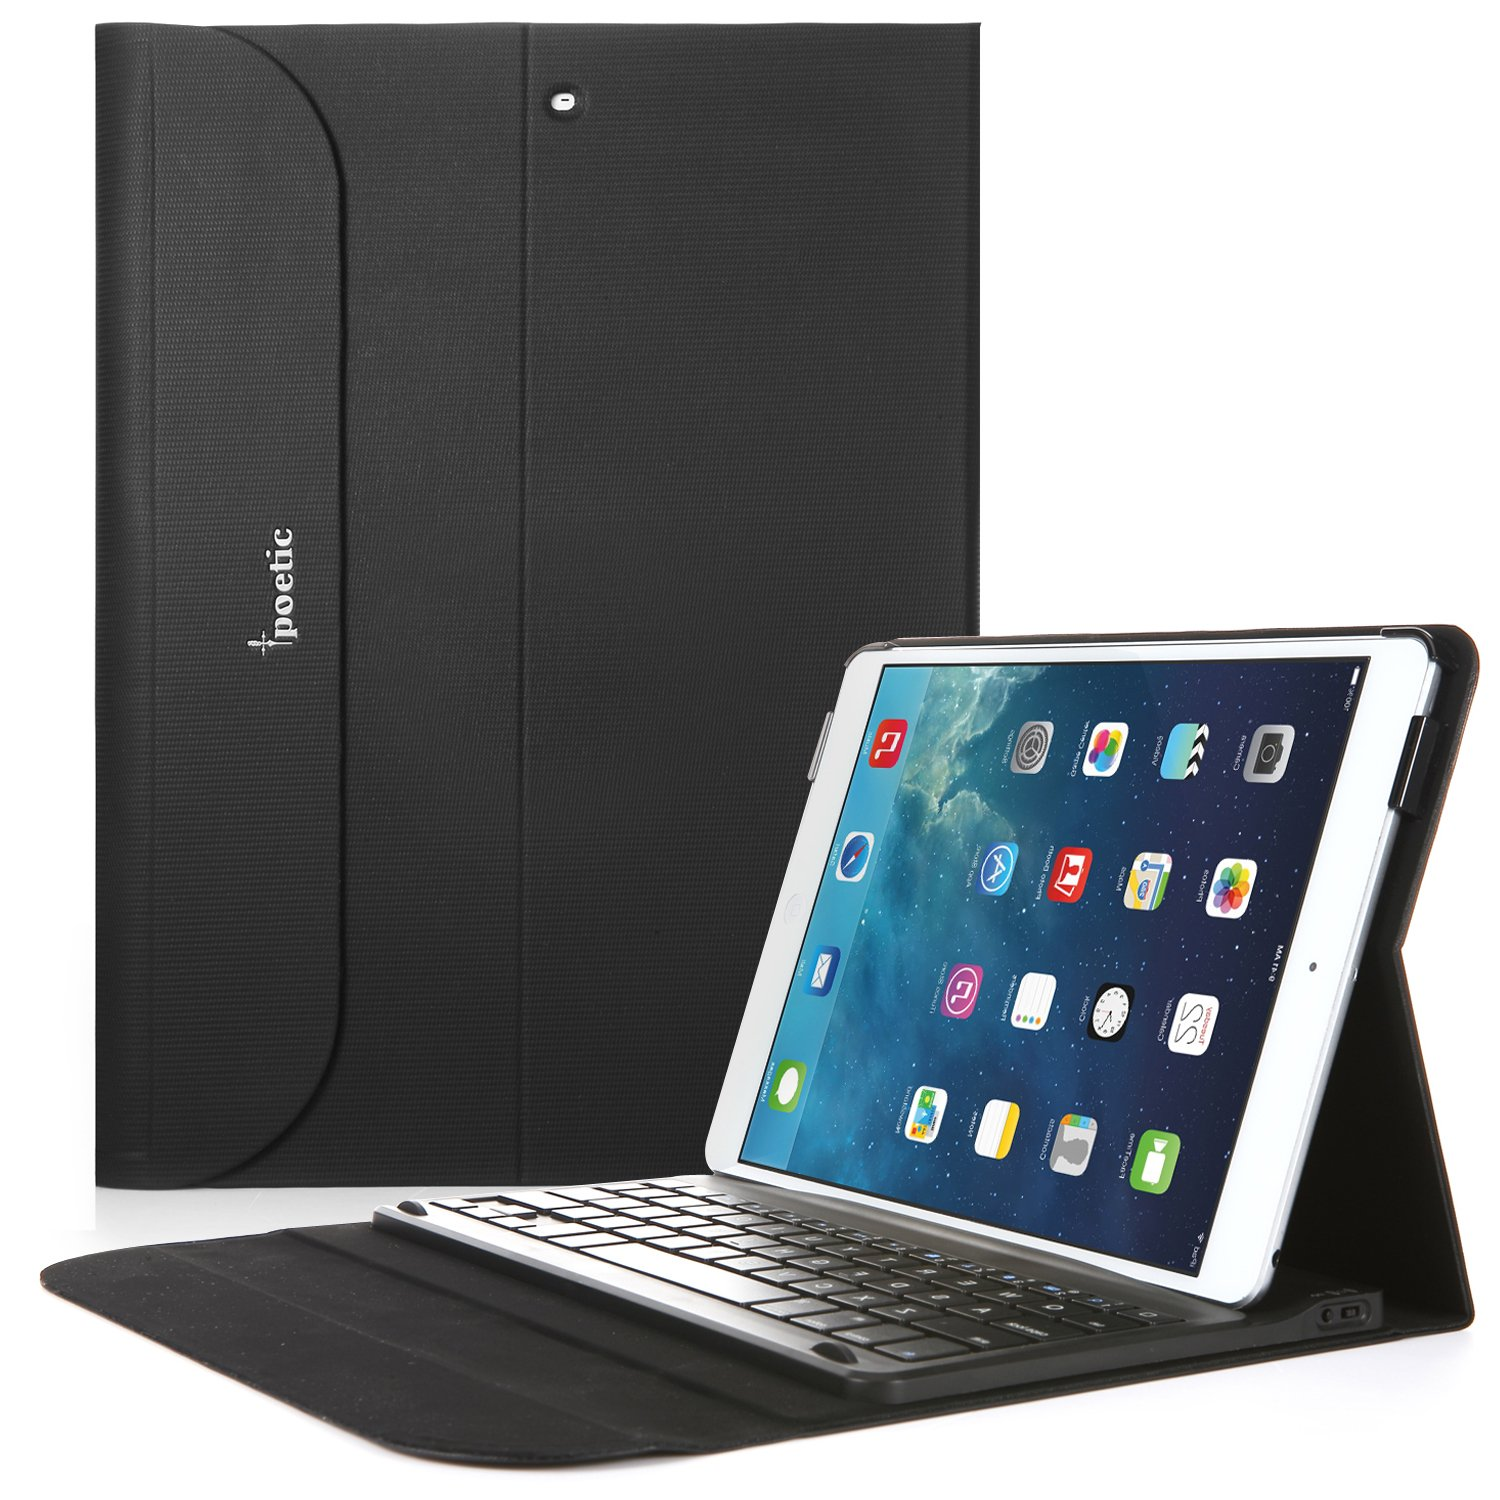 best apple ipad air keyboard case review ipad cases. Black Bedroom Furniture Sets. Home Design Ideas